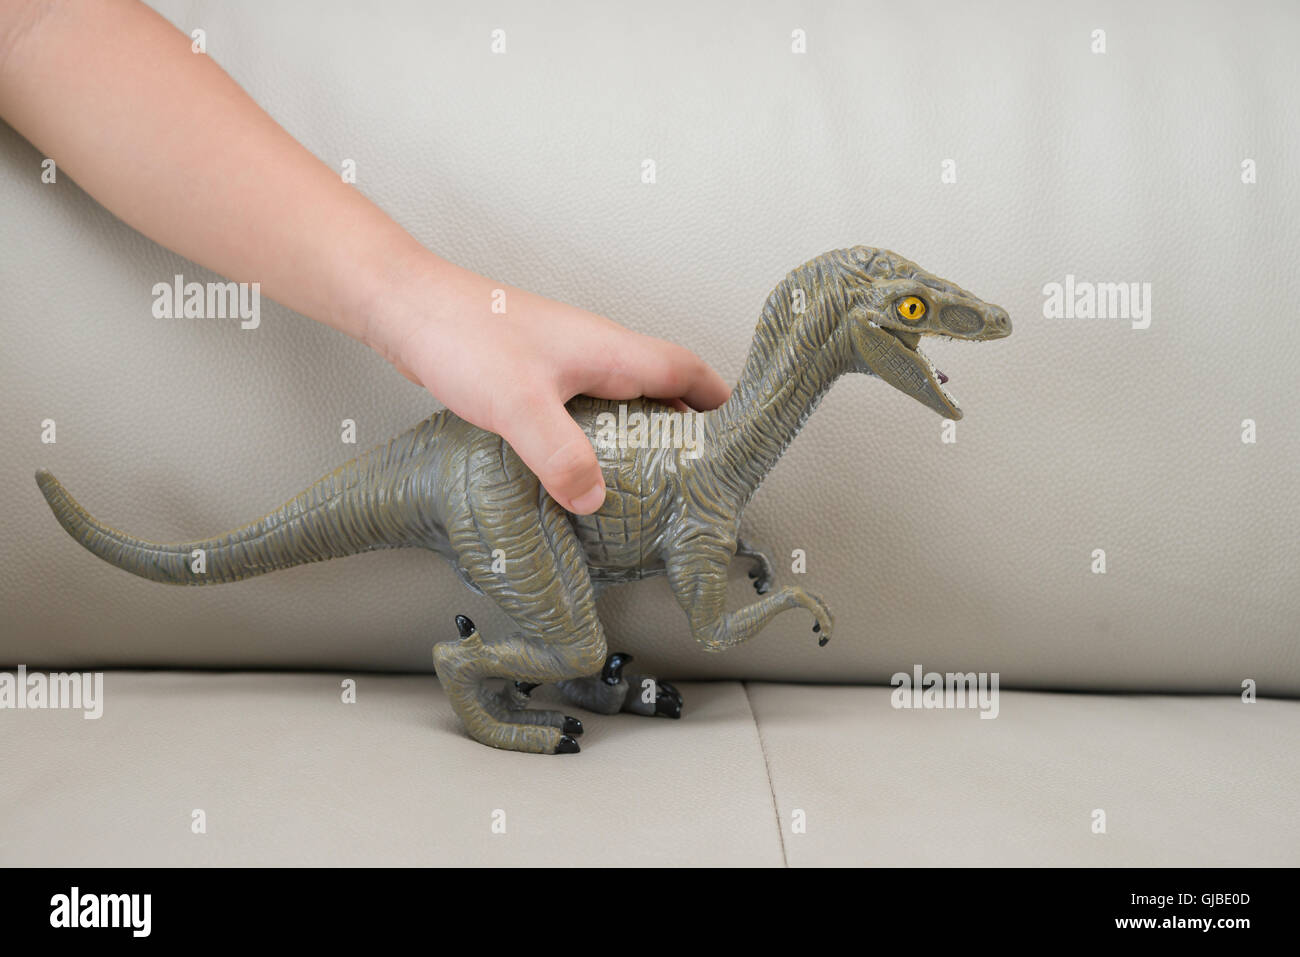 kids hand catching a greu Deinonychus toy on a sofa at home - Stock Image